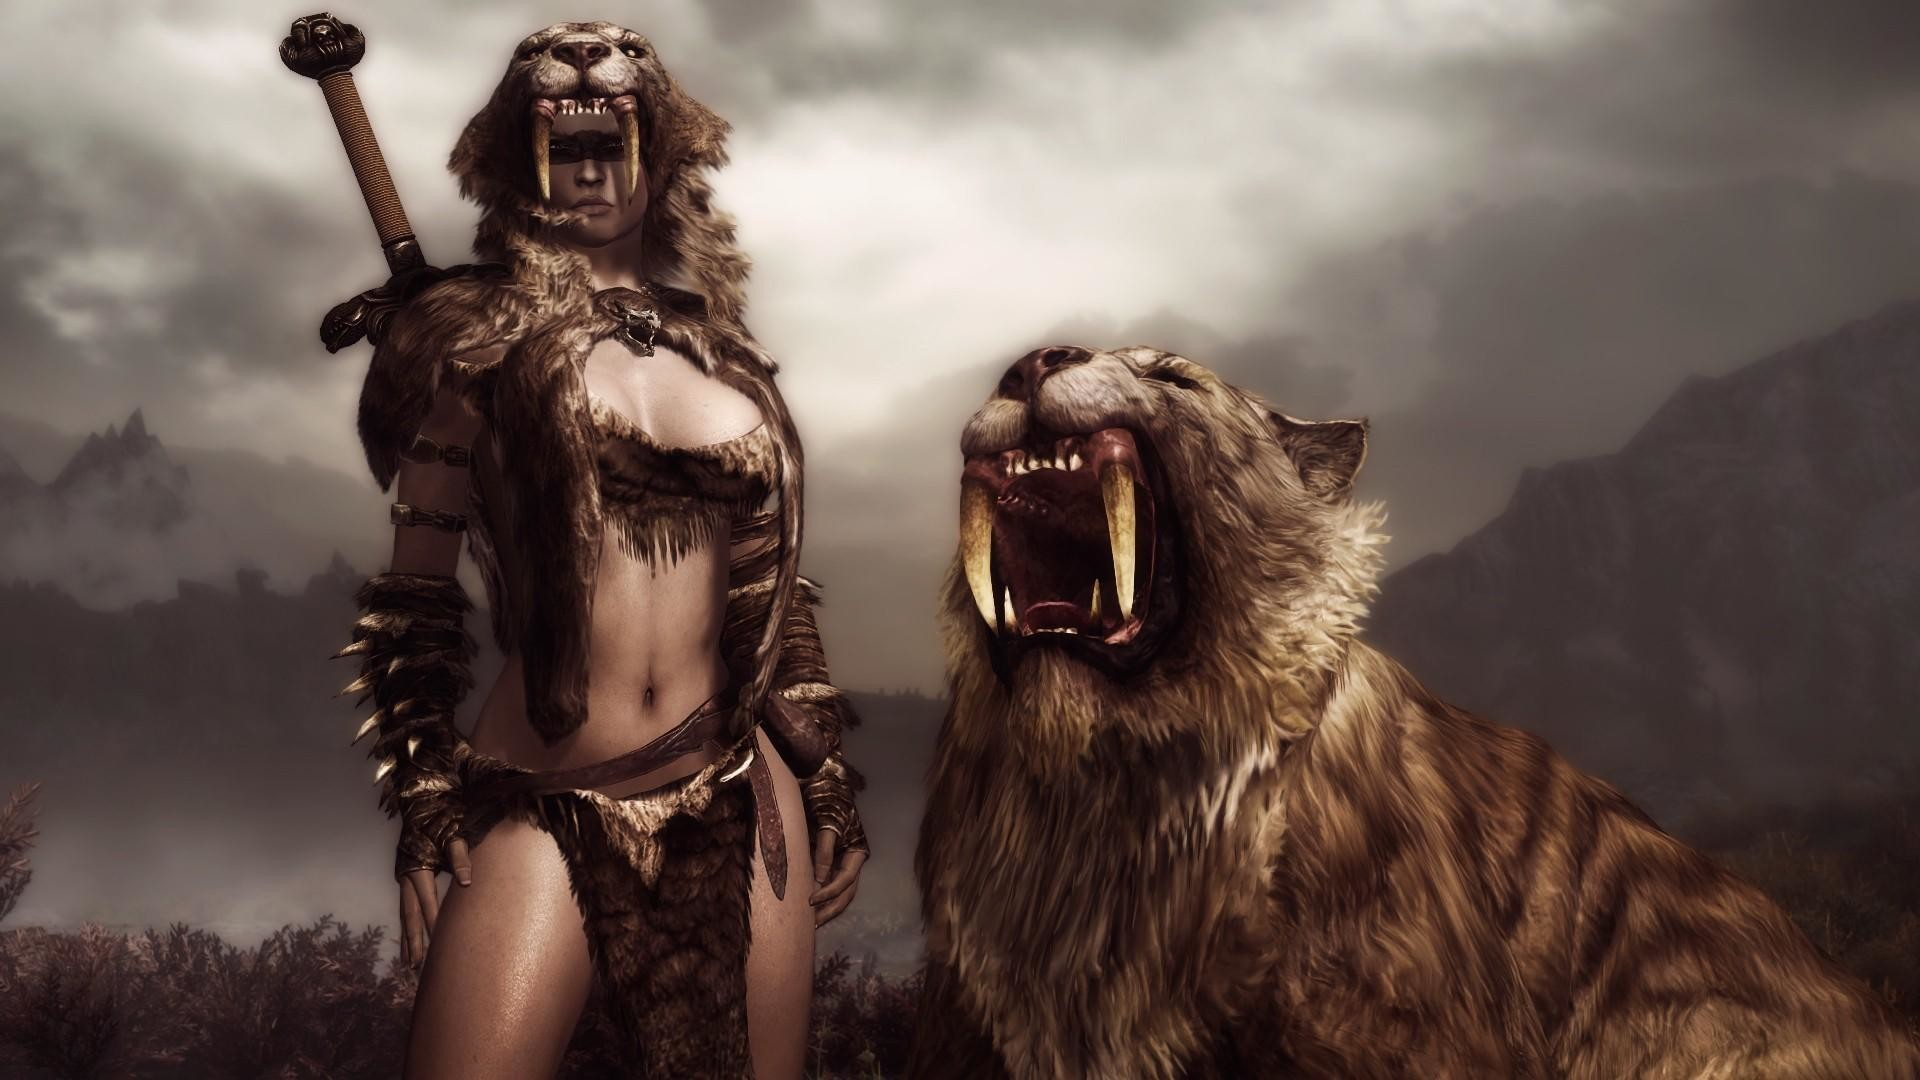 Far Cry Primal Hd Wallpaper Posted By Ethan Cunningham